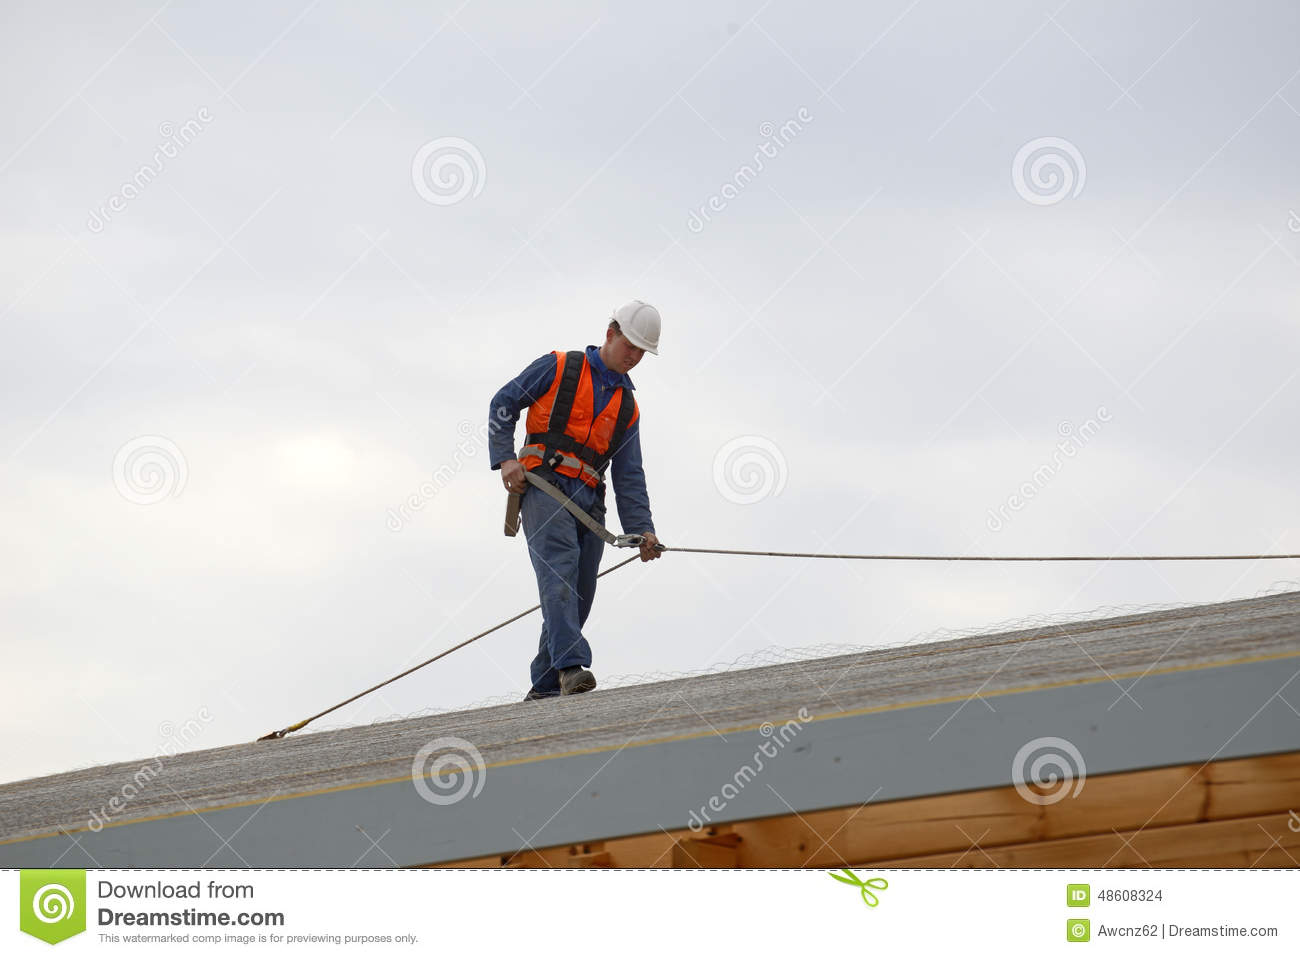 how to put awinter liner in a hard hat